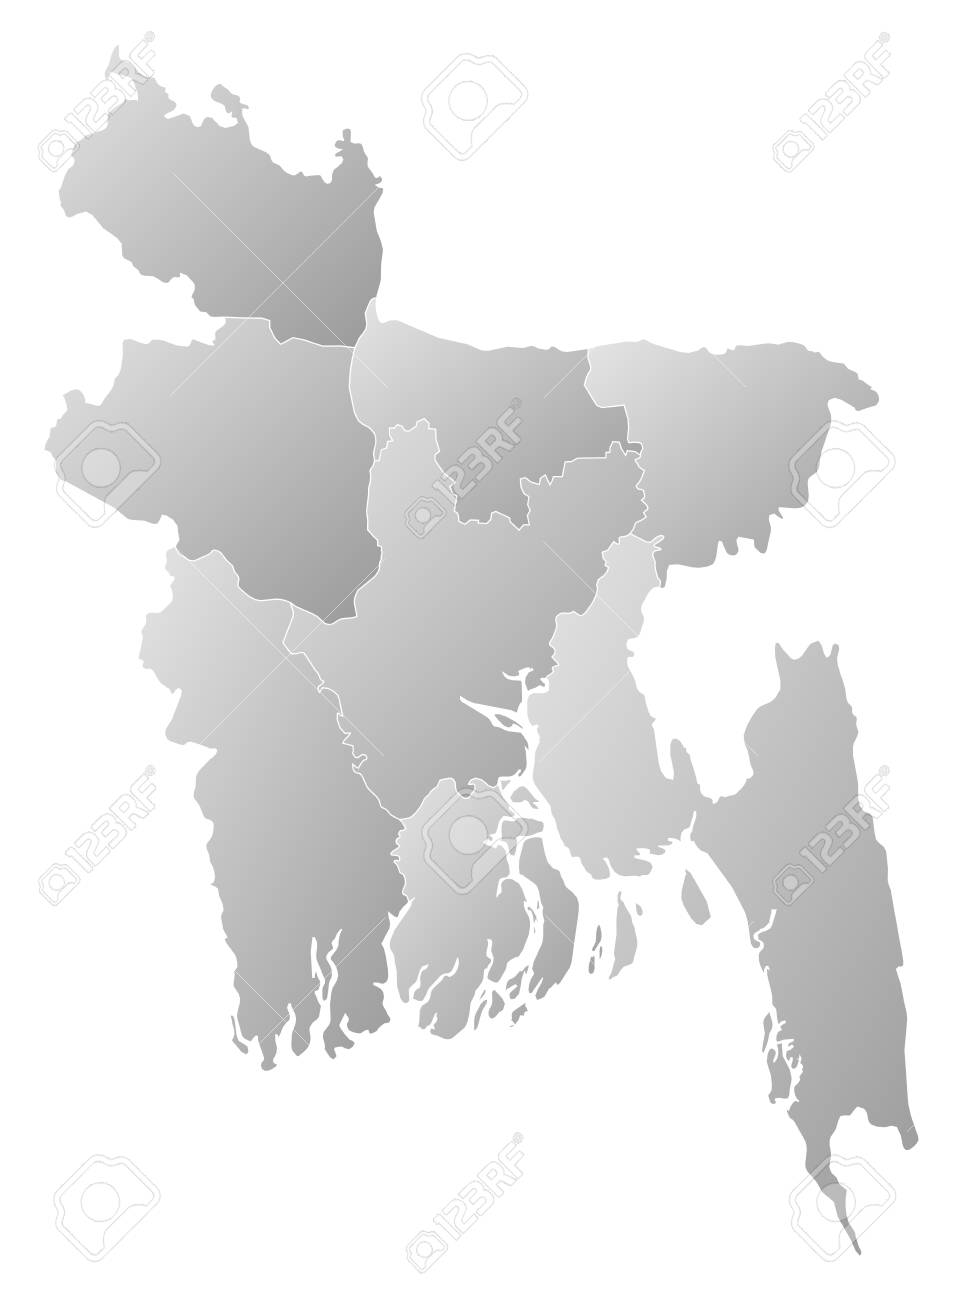 Map Of Bangladesh With The Provinces Filled With A Linear Gra Nt